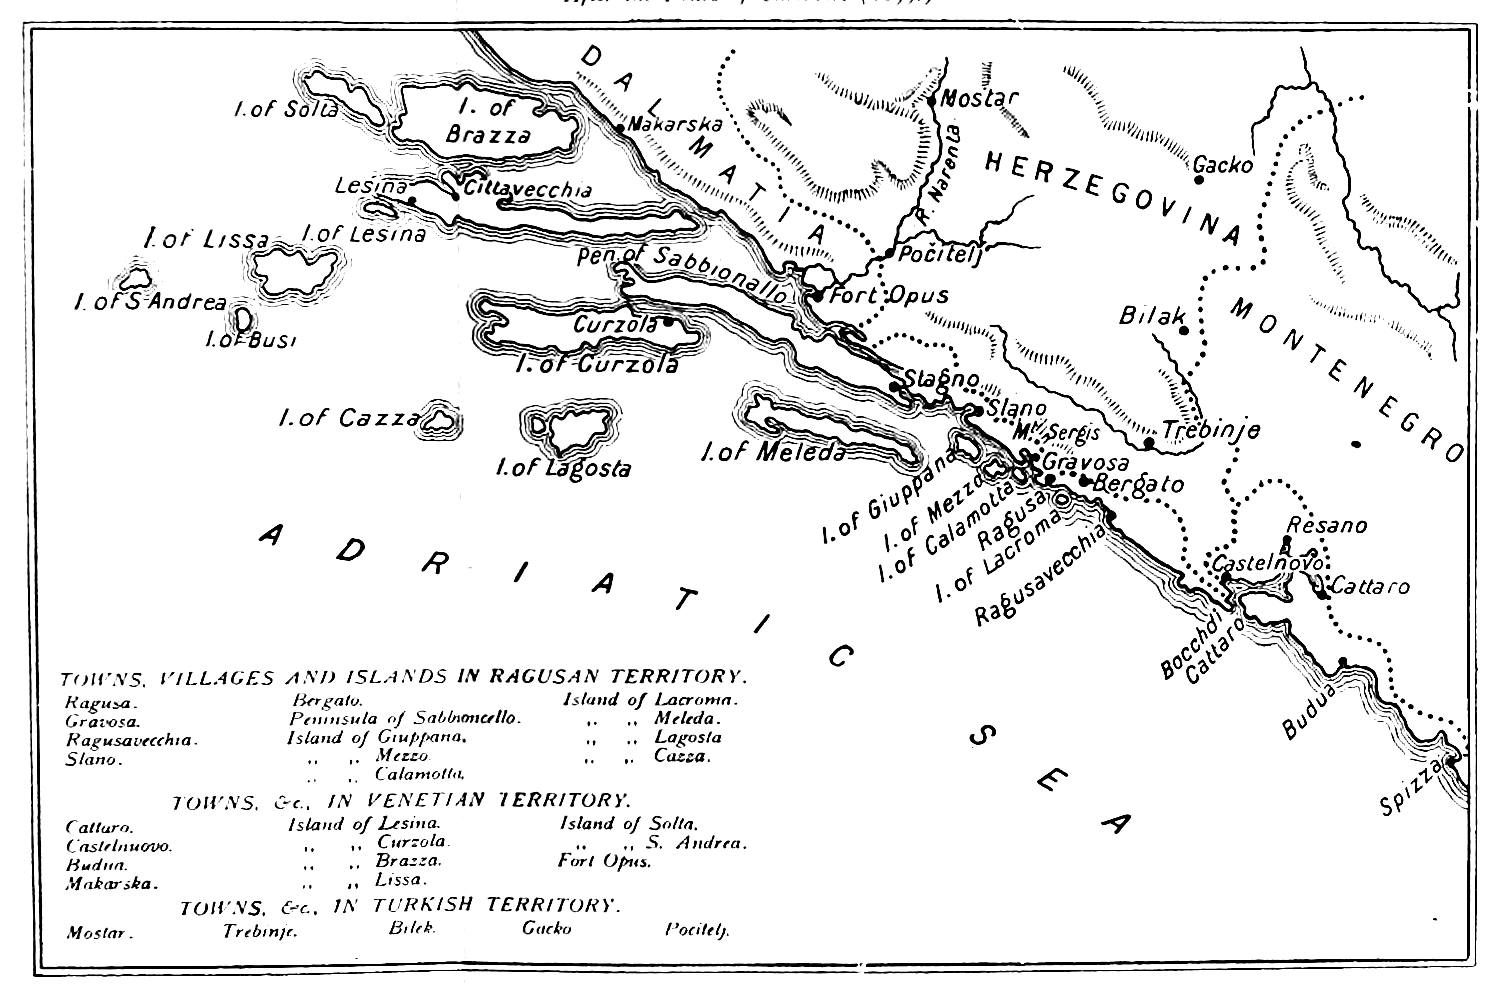 The project gutenberg ebook of the republic of ragusa by luigi map of the ragusan republic and neighbouring states fandeluxe Image collections